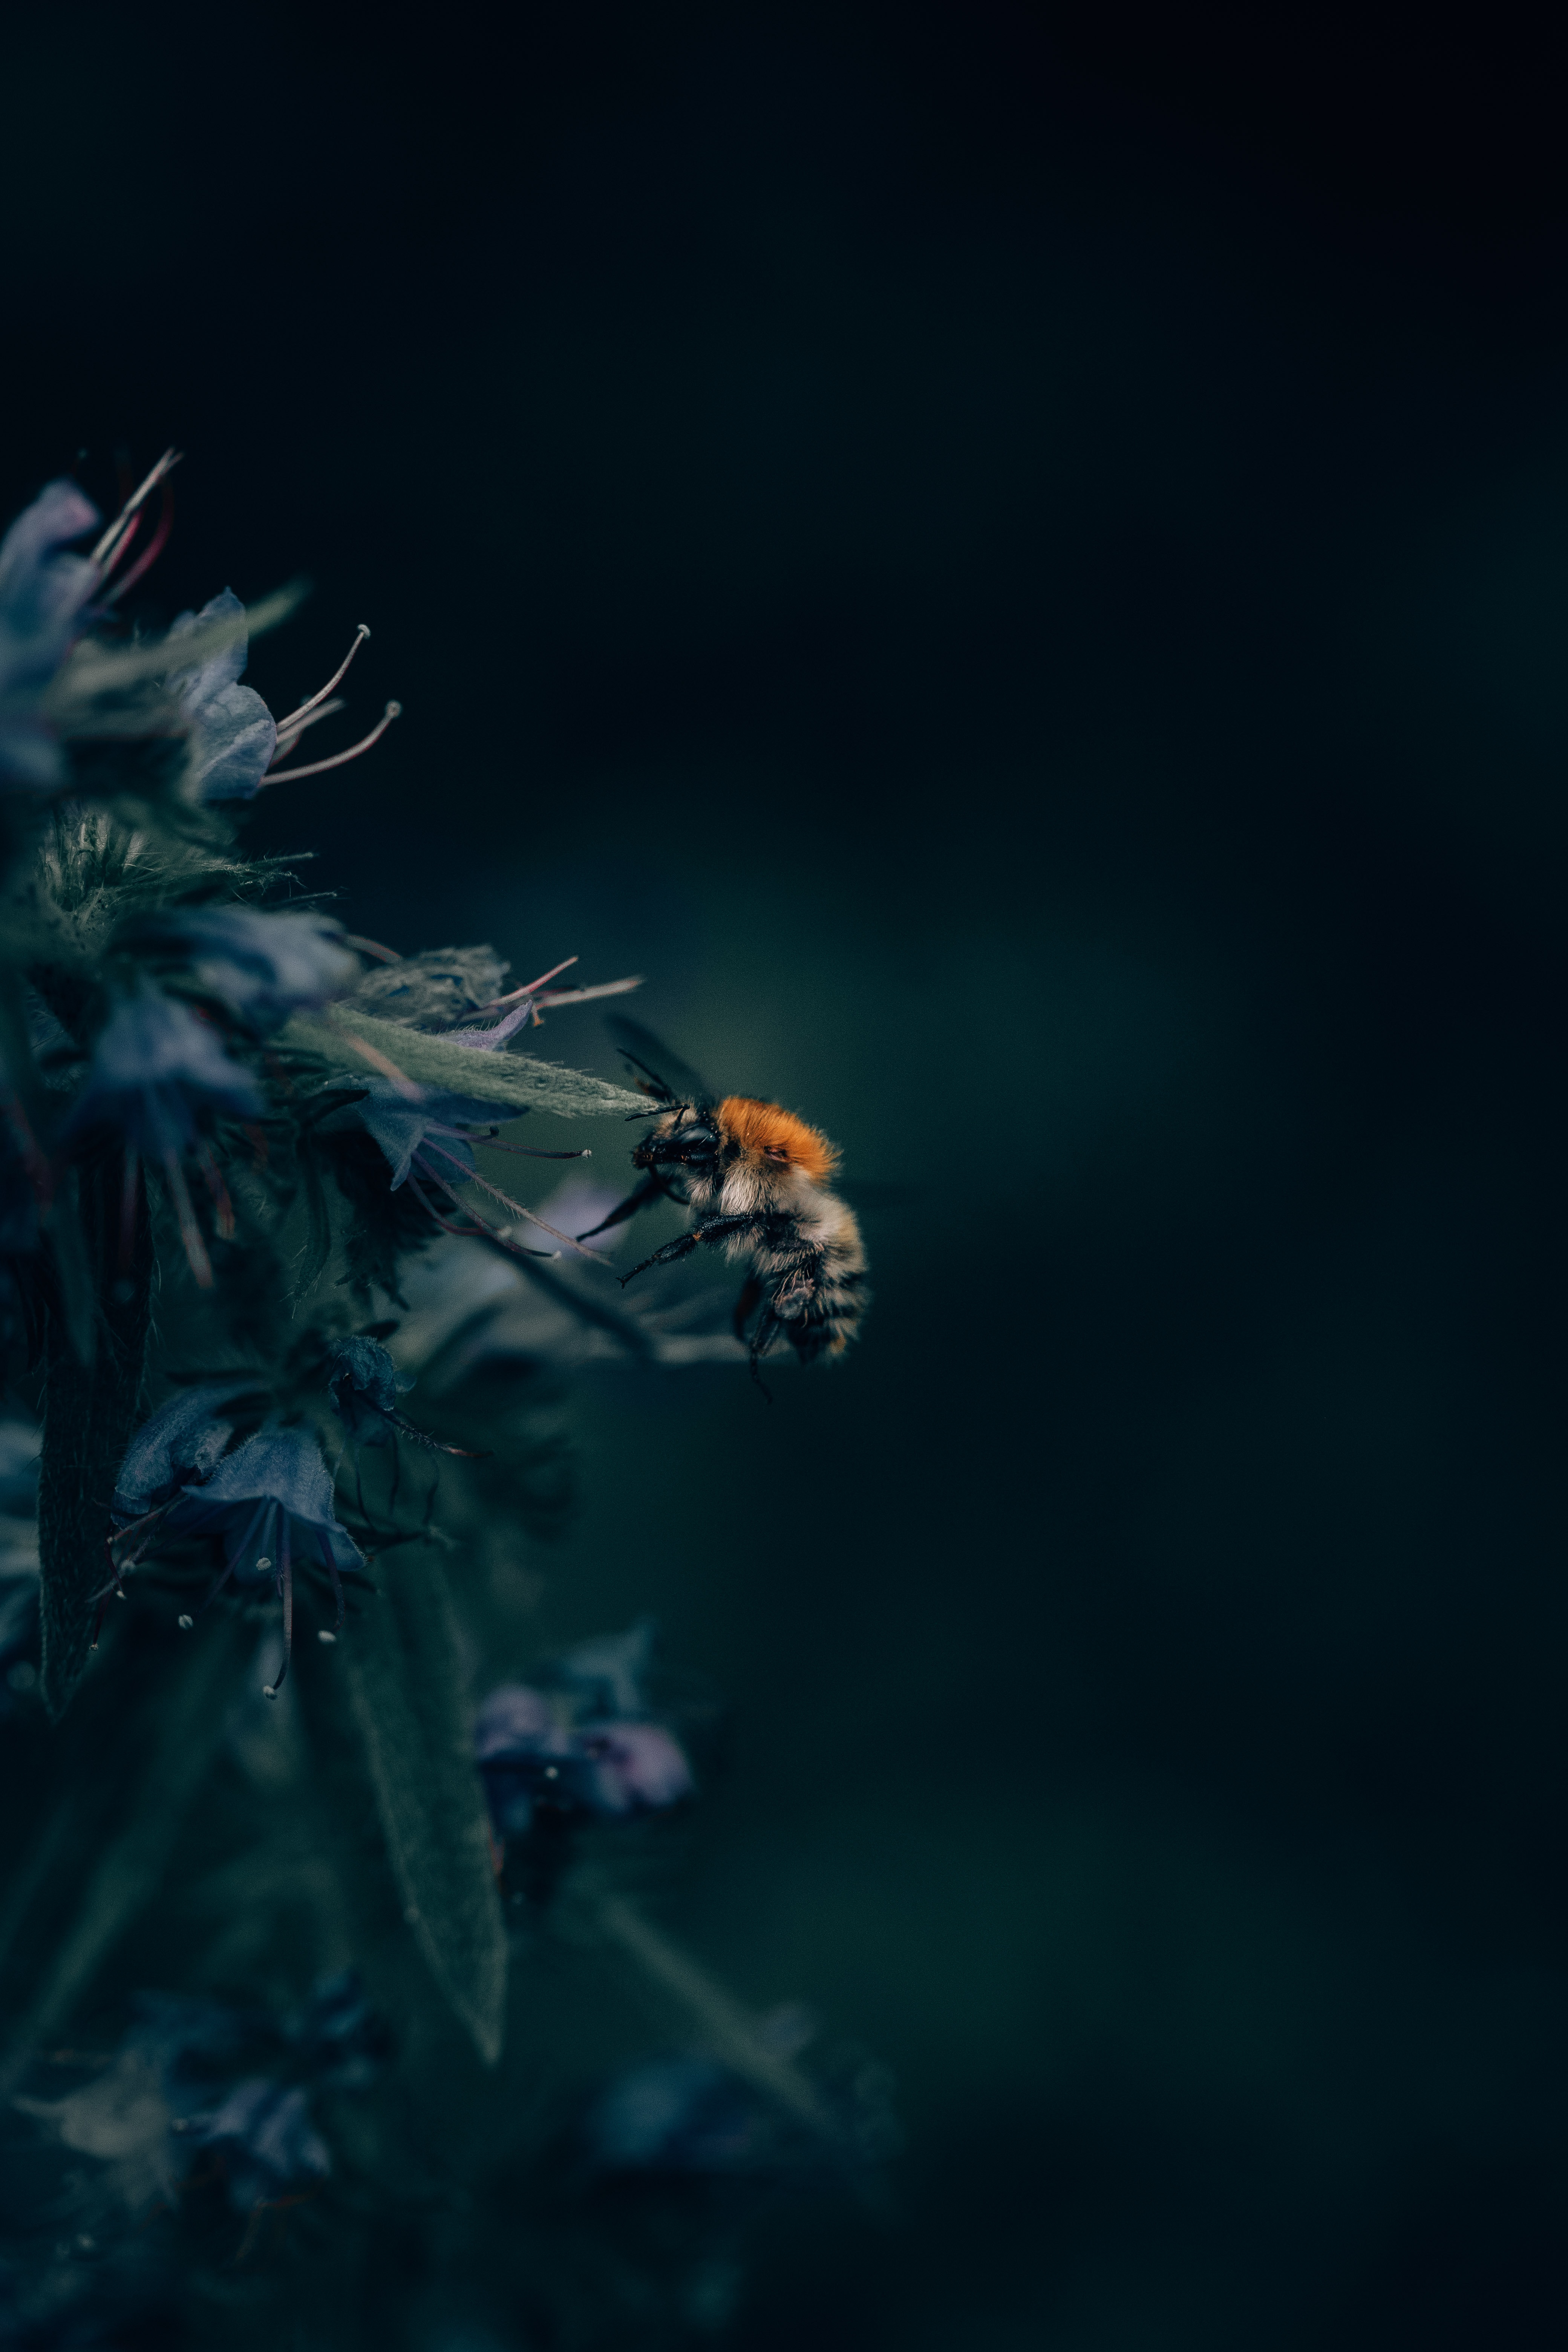 Download wallpapers 4160x6240 bumblebee, insect, flower